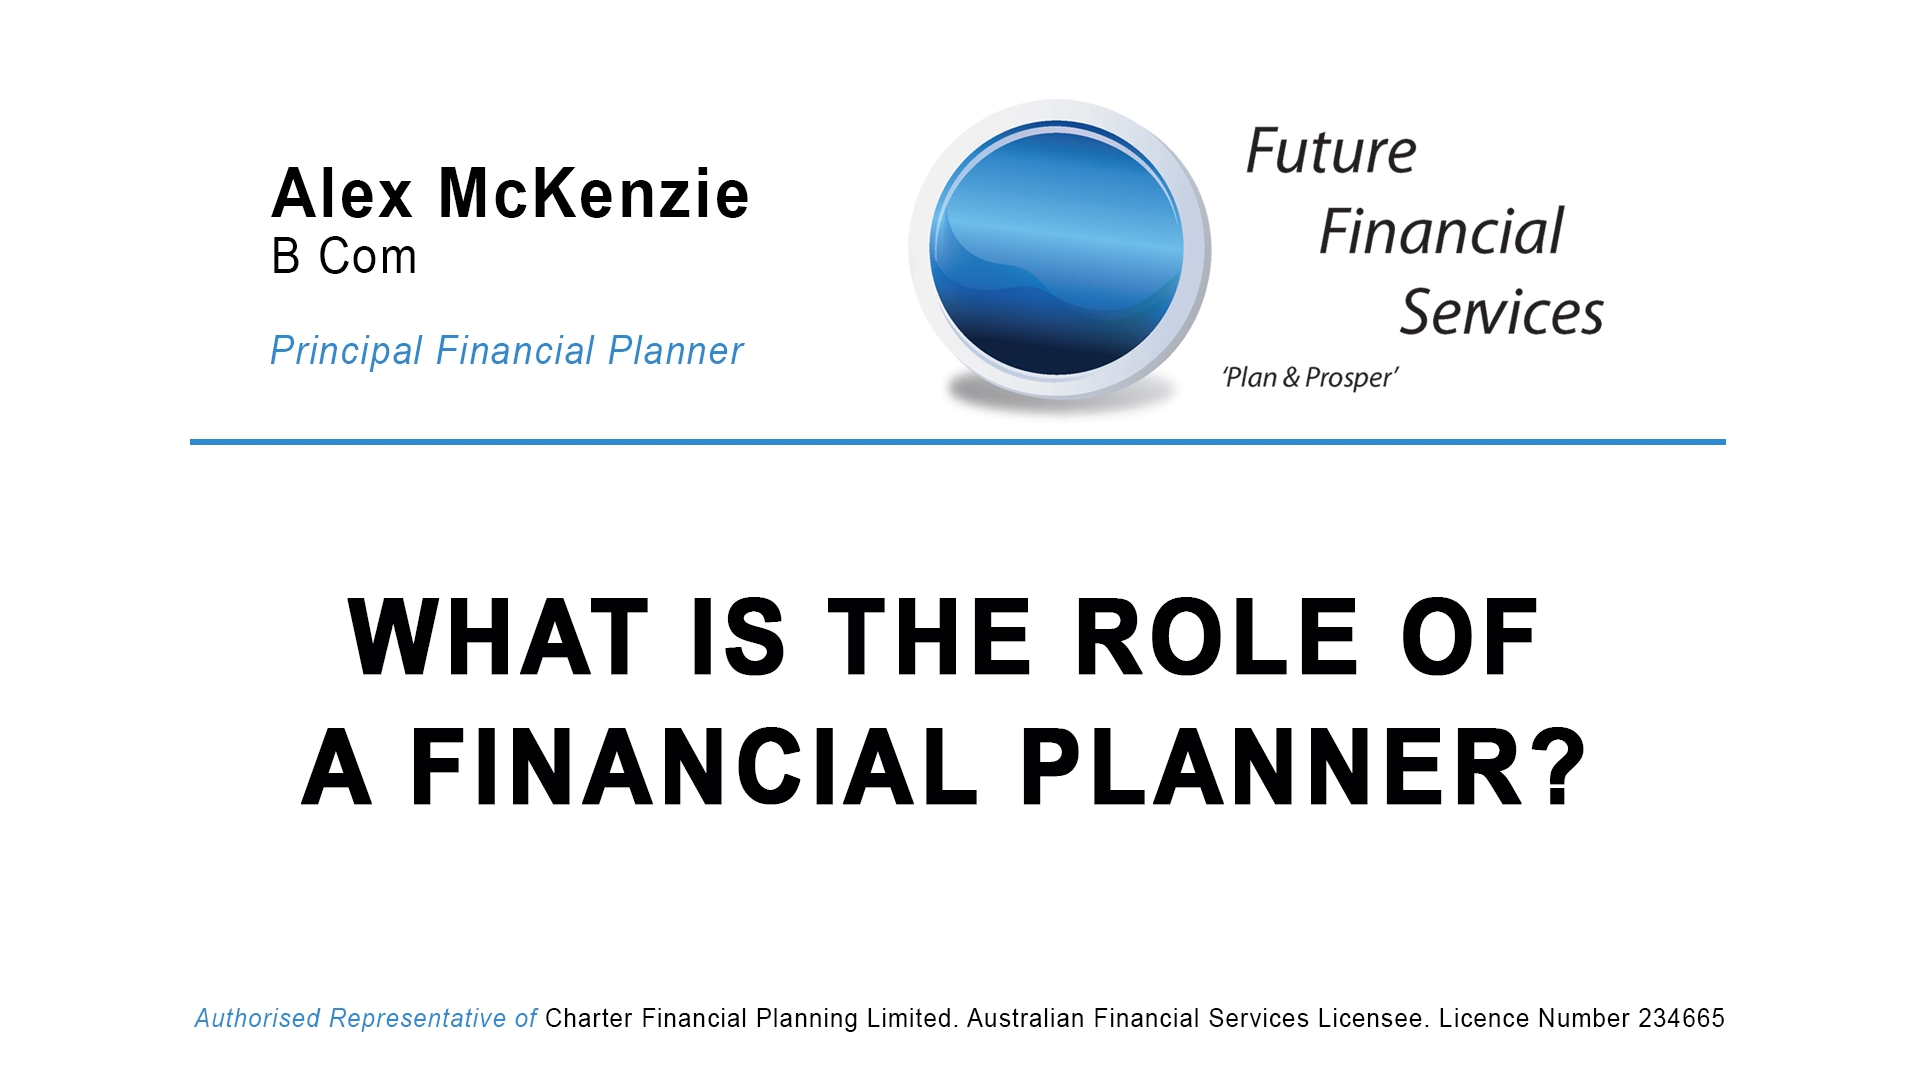 What is the role of a financial planner